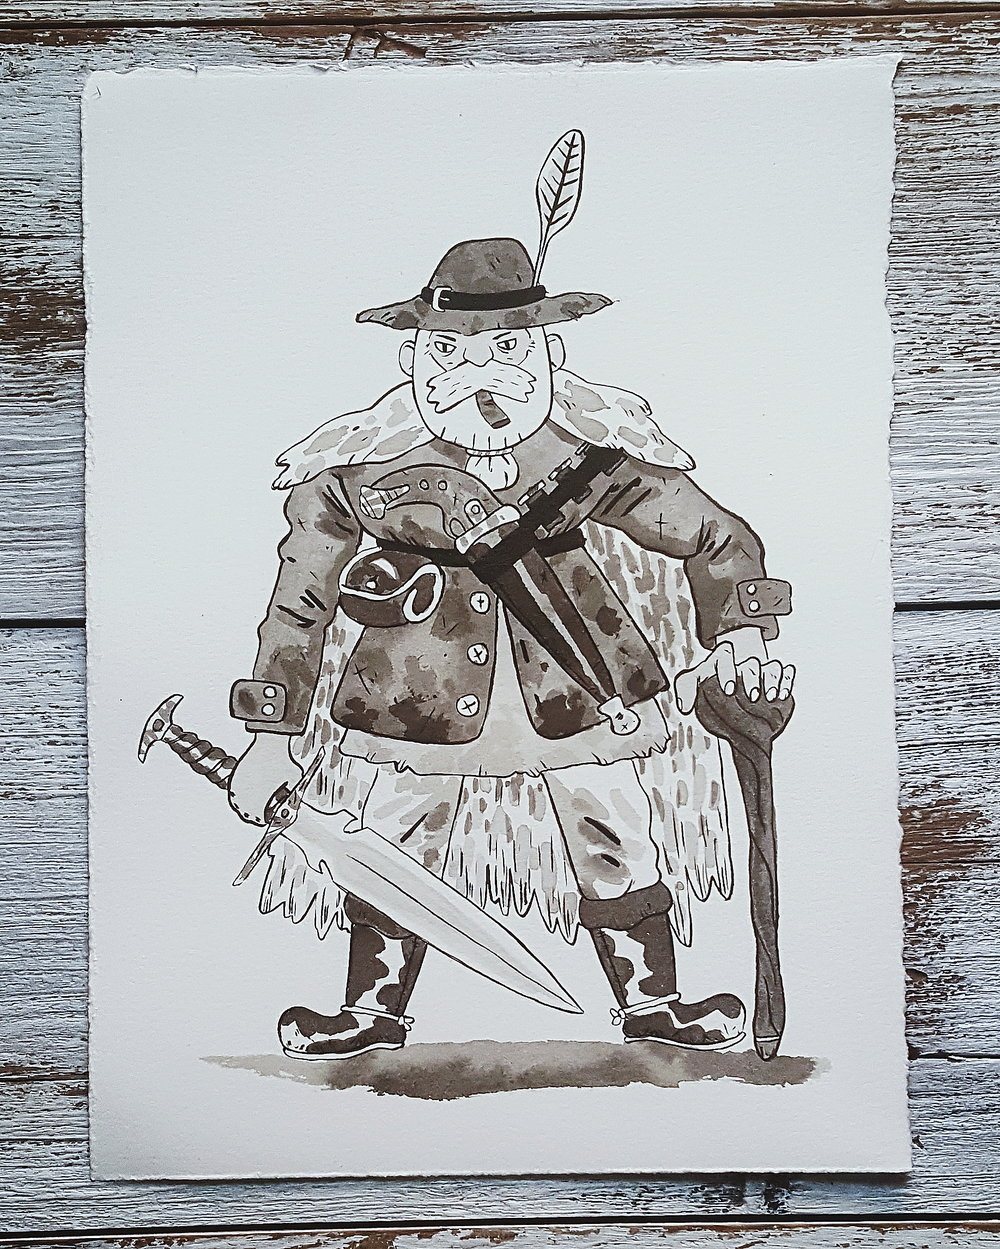 A Knight a Day No. 38, Ranger Otto Oloffson - Otto grew up training as a blacksmith under his mother's tutelage. When the kingdom was fighting against an infestation of demons, he worked feverishly making arms for soldiers to take up in the fight. One day, he took a unicorn hair he was gifted by a soldier, and forged it into the blade. The result was a sword that glowed a searing white light. Just pointing the weapon at the demons pushed them back. Otto took the sword into battle as hope seemed lost, and beat the dark forces back. Now he serves as a ranger, patrolling the territories with his brilliant blade.